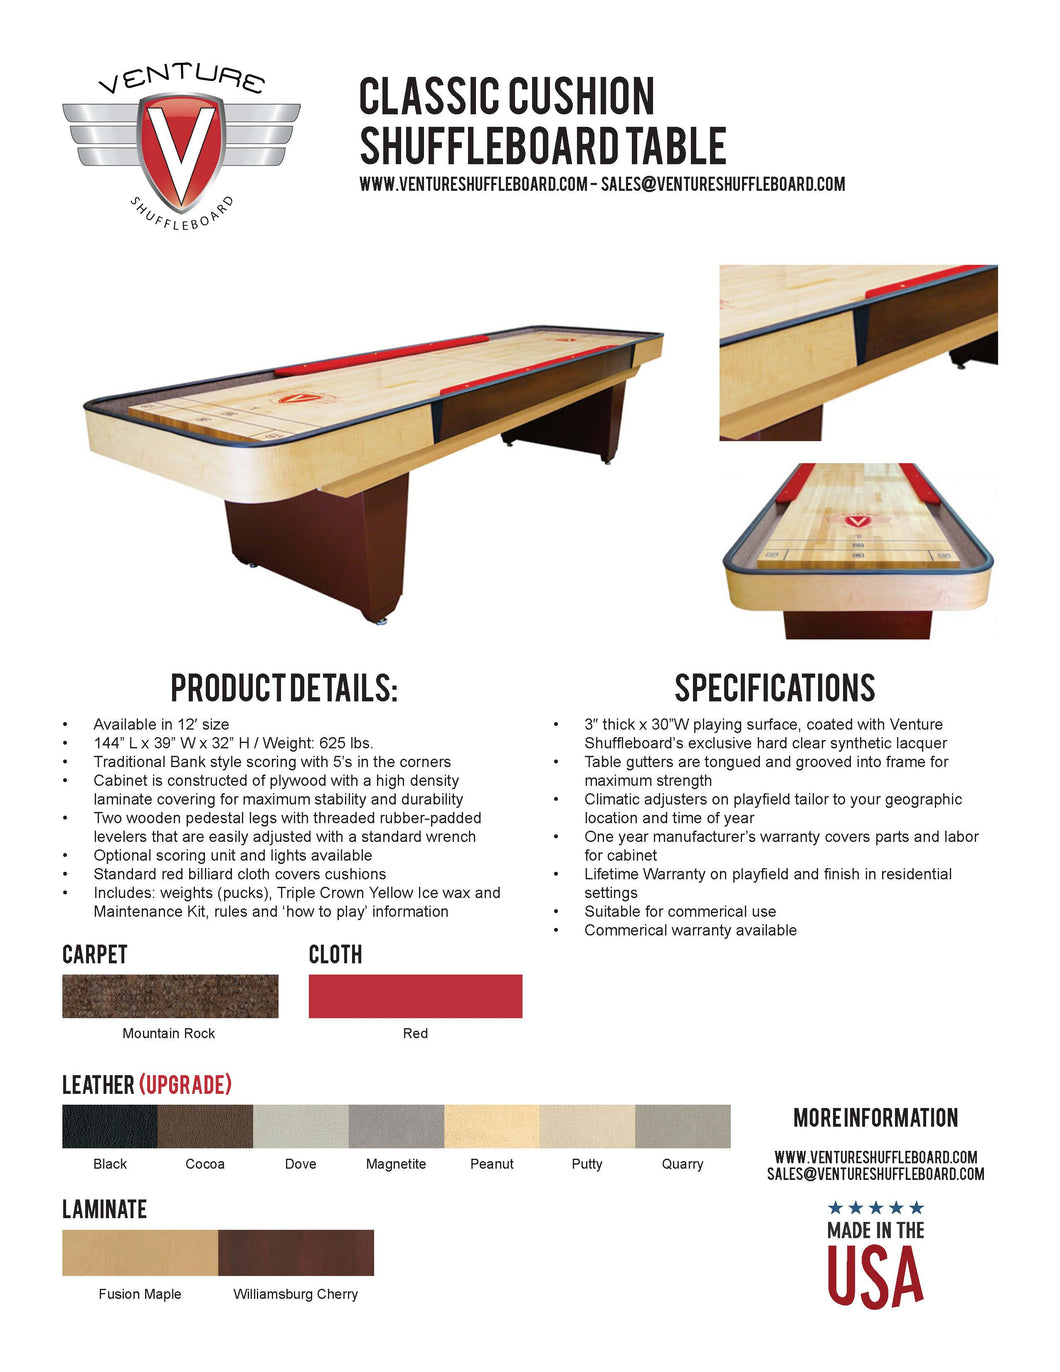 Classic Cushion Shuffleboard Table